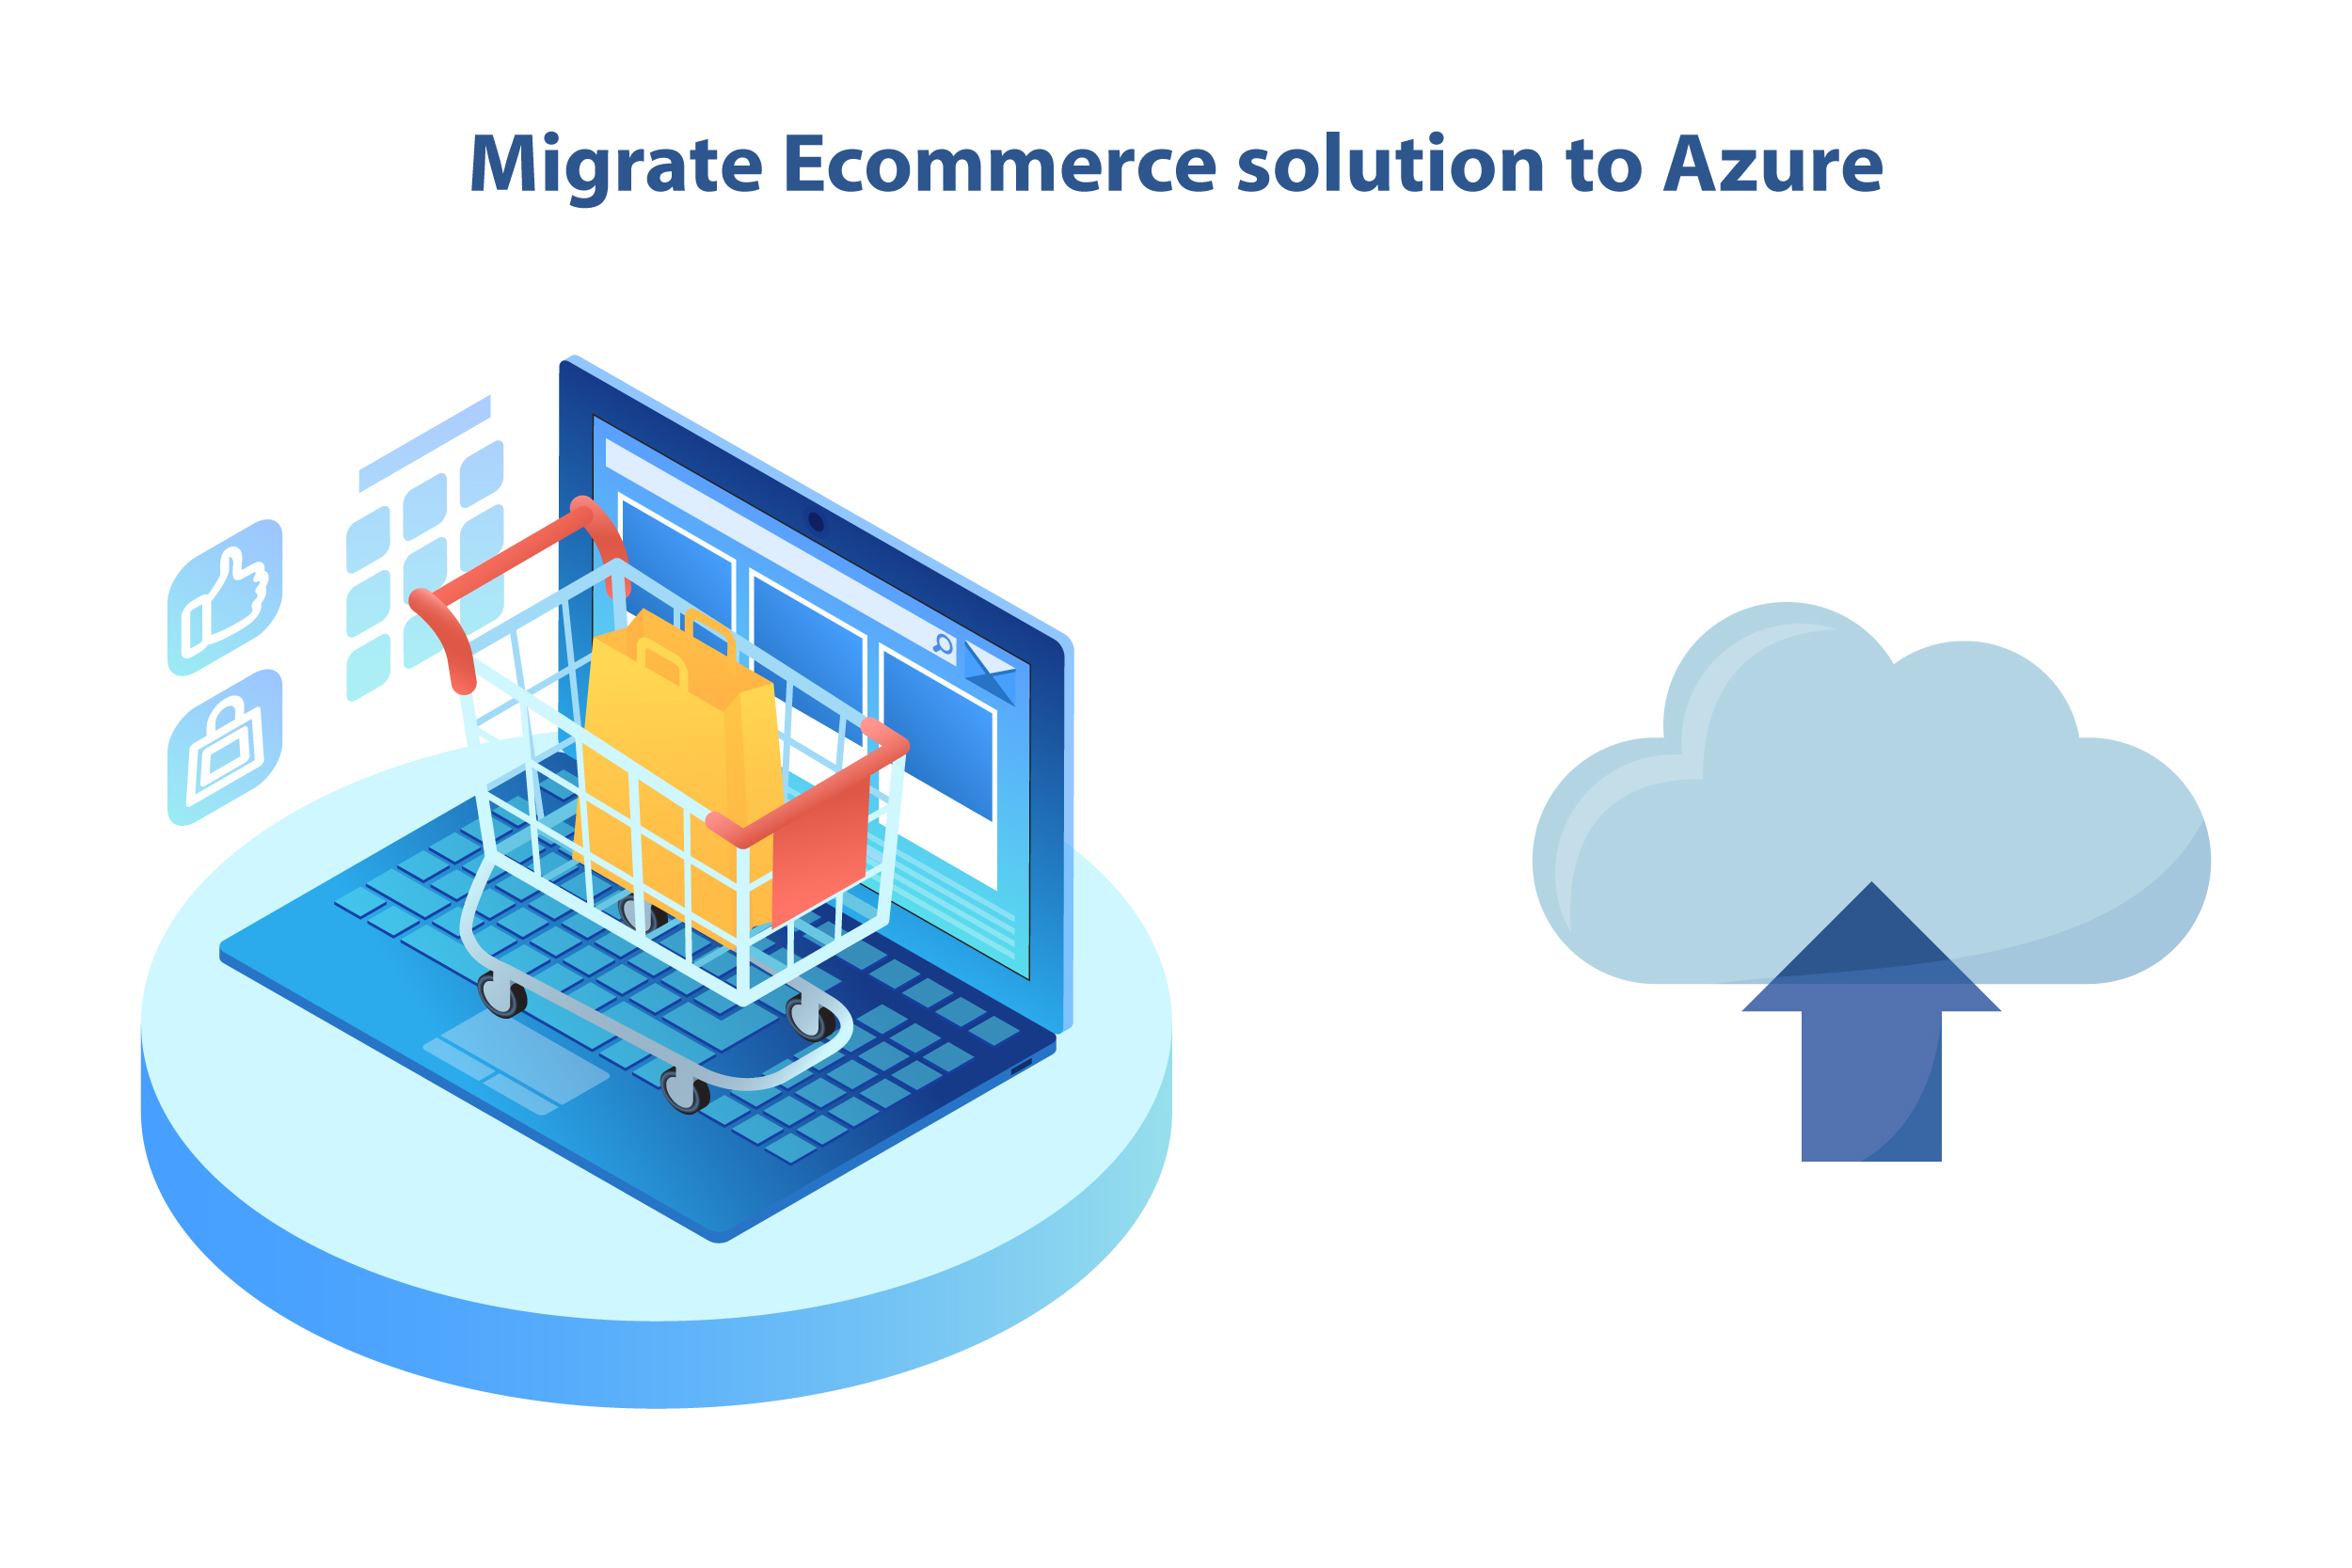 Migrate Ecommerce solution to Azure